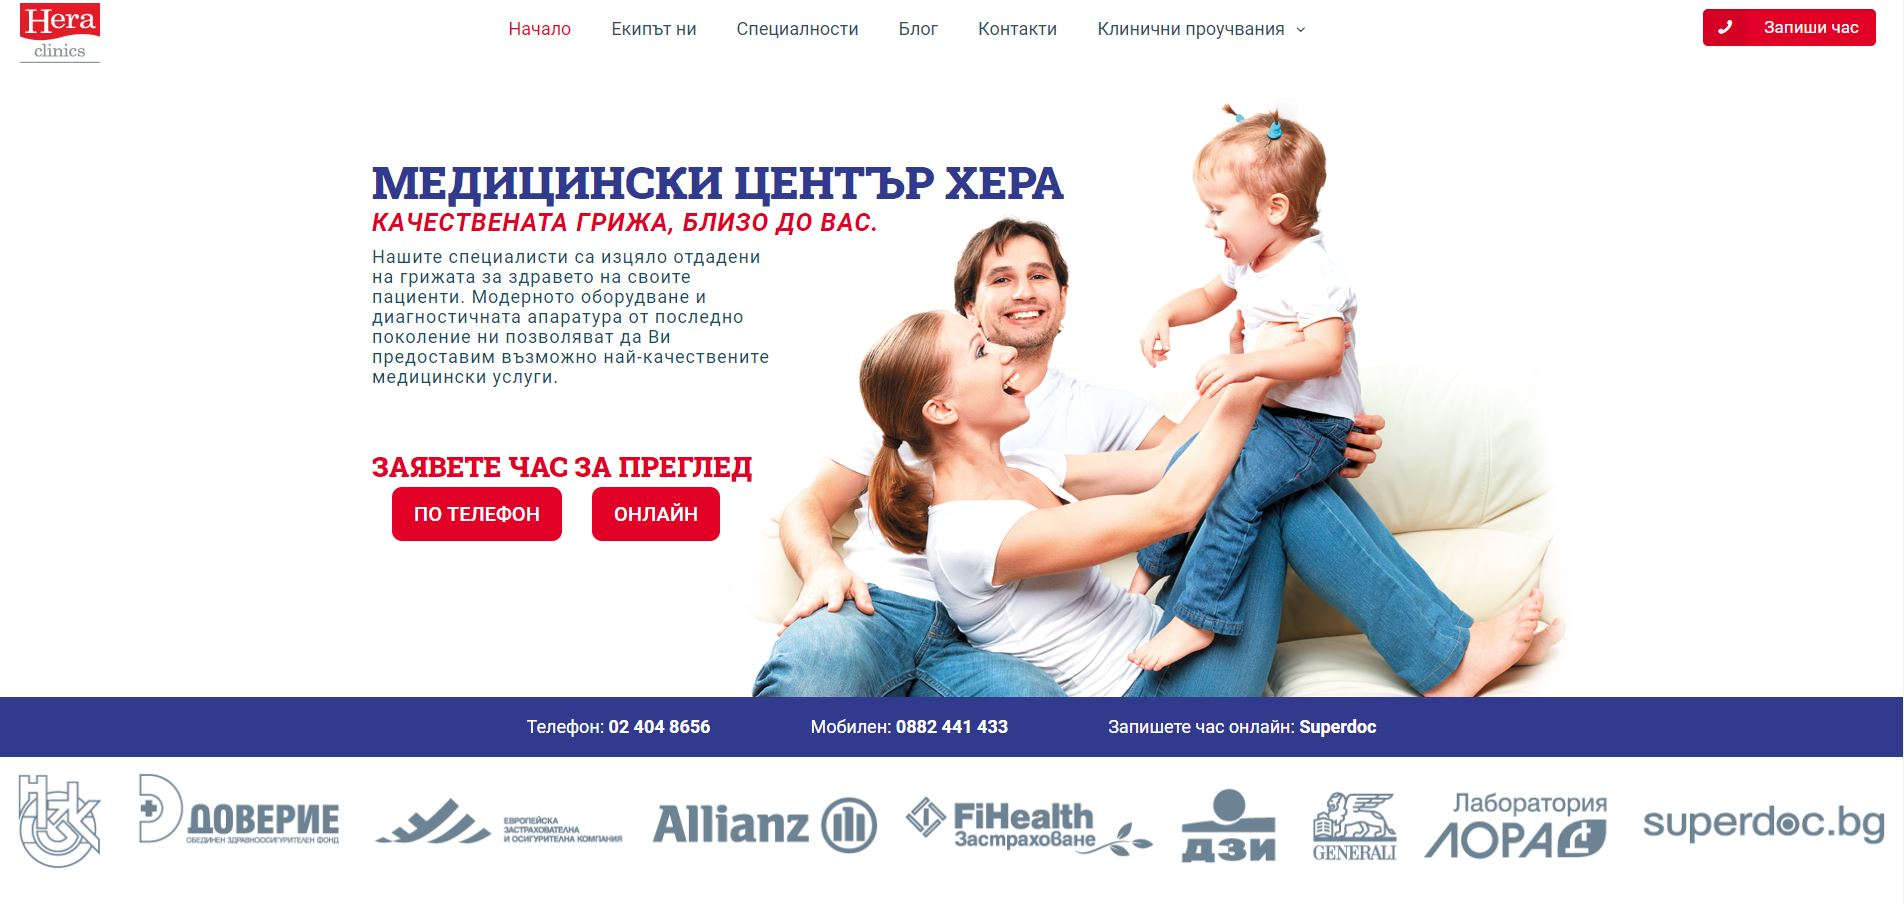 Introducing the brand new website of Medical Center Hera